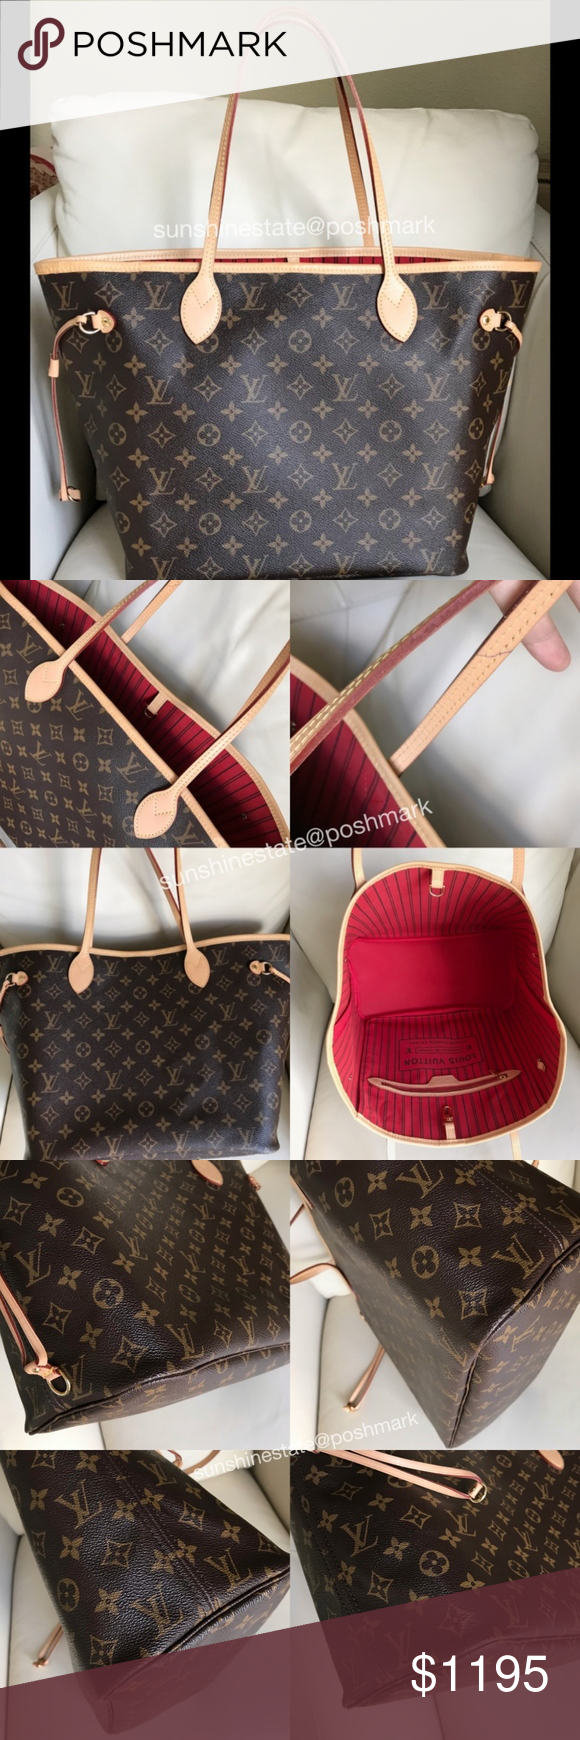 472356d0f0ae Louis Vuitton Neverfull MM Monogram bag red lining Authentic LV Neverfull  monogram MM Tote bag with red lining (Cherry)! Lightly used as pictured  strap ...